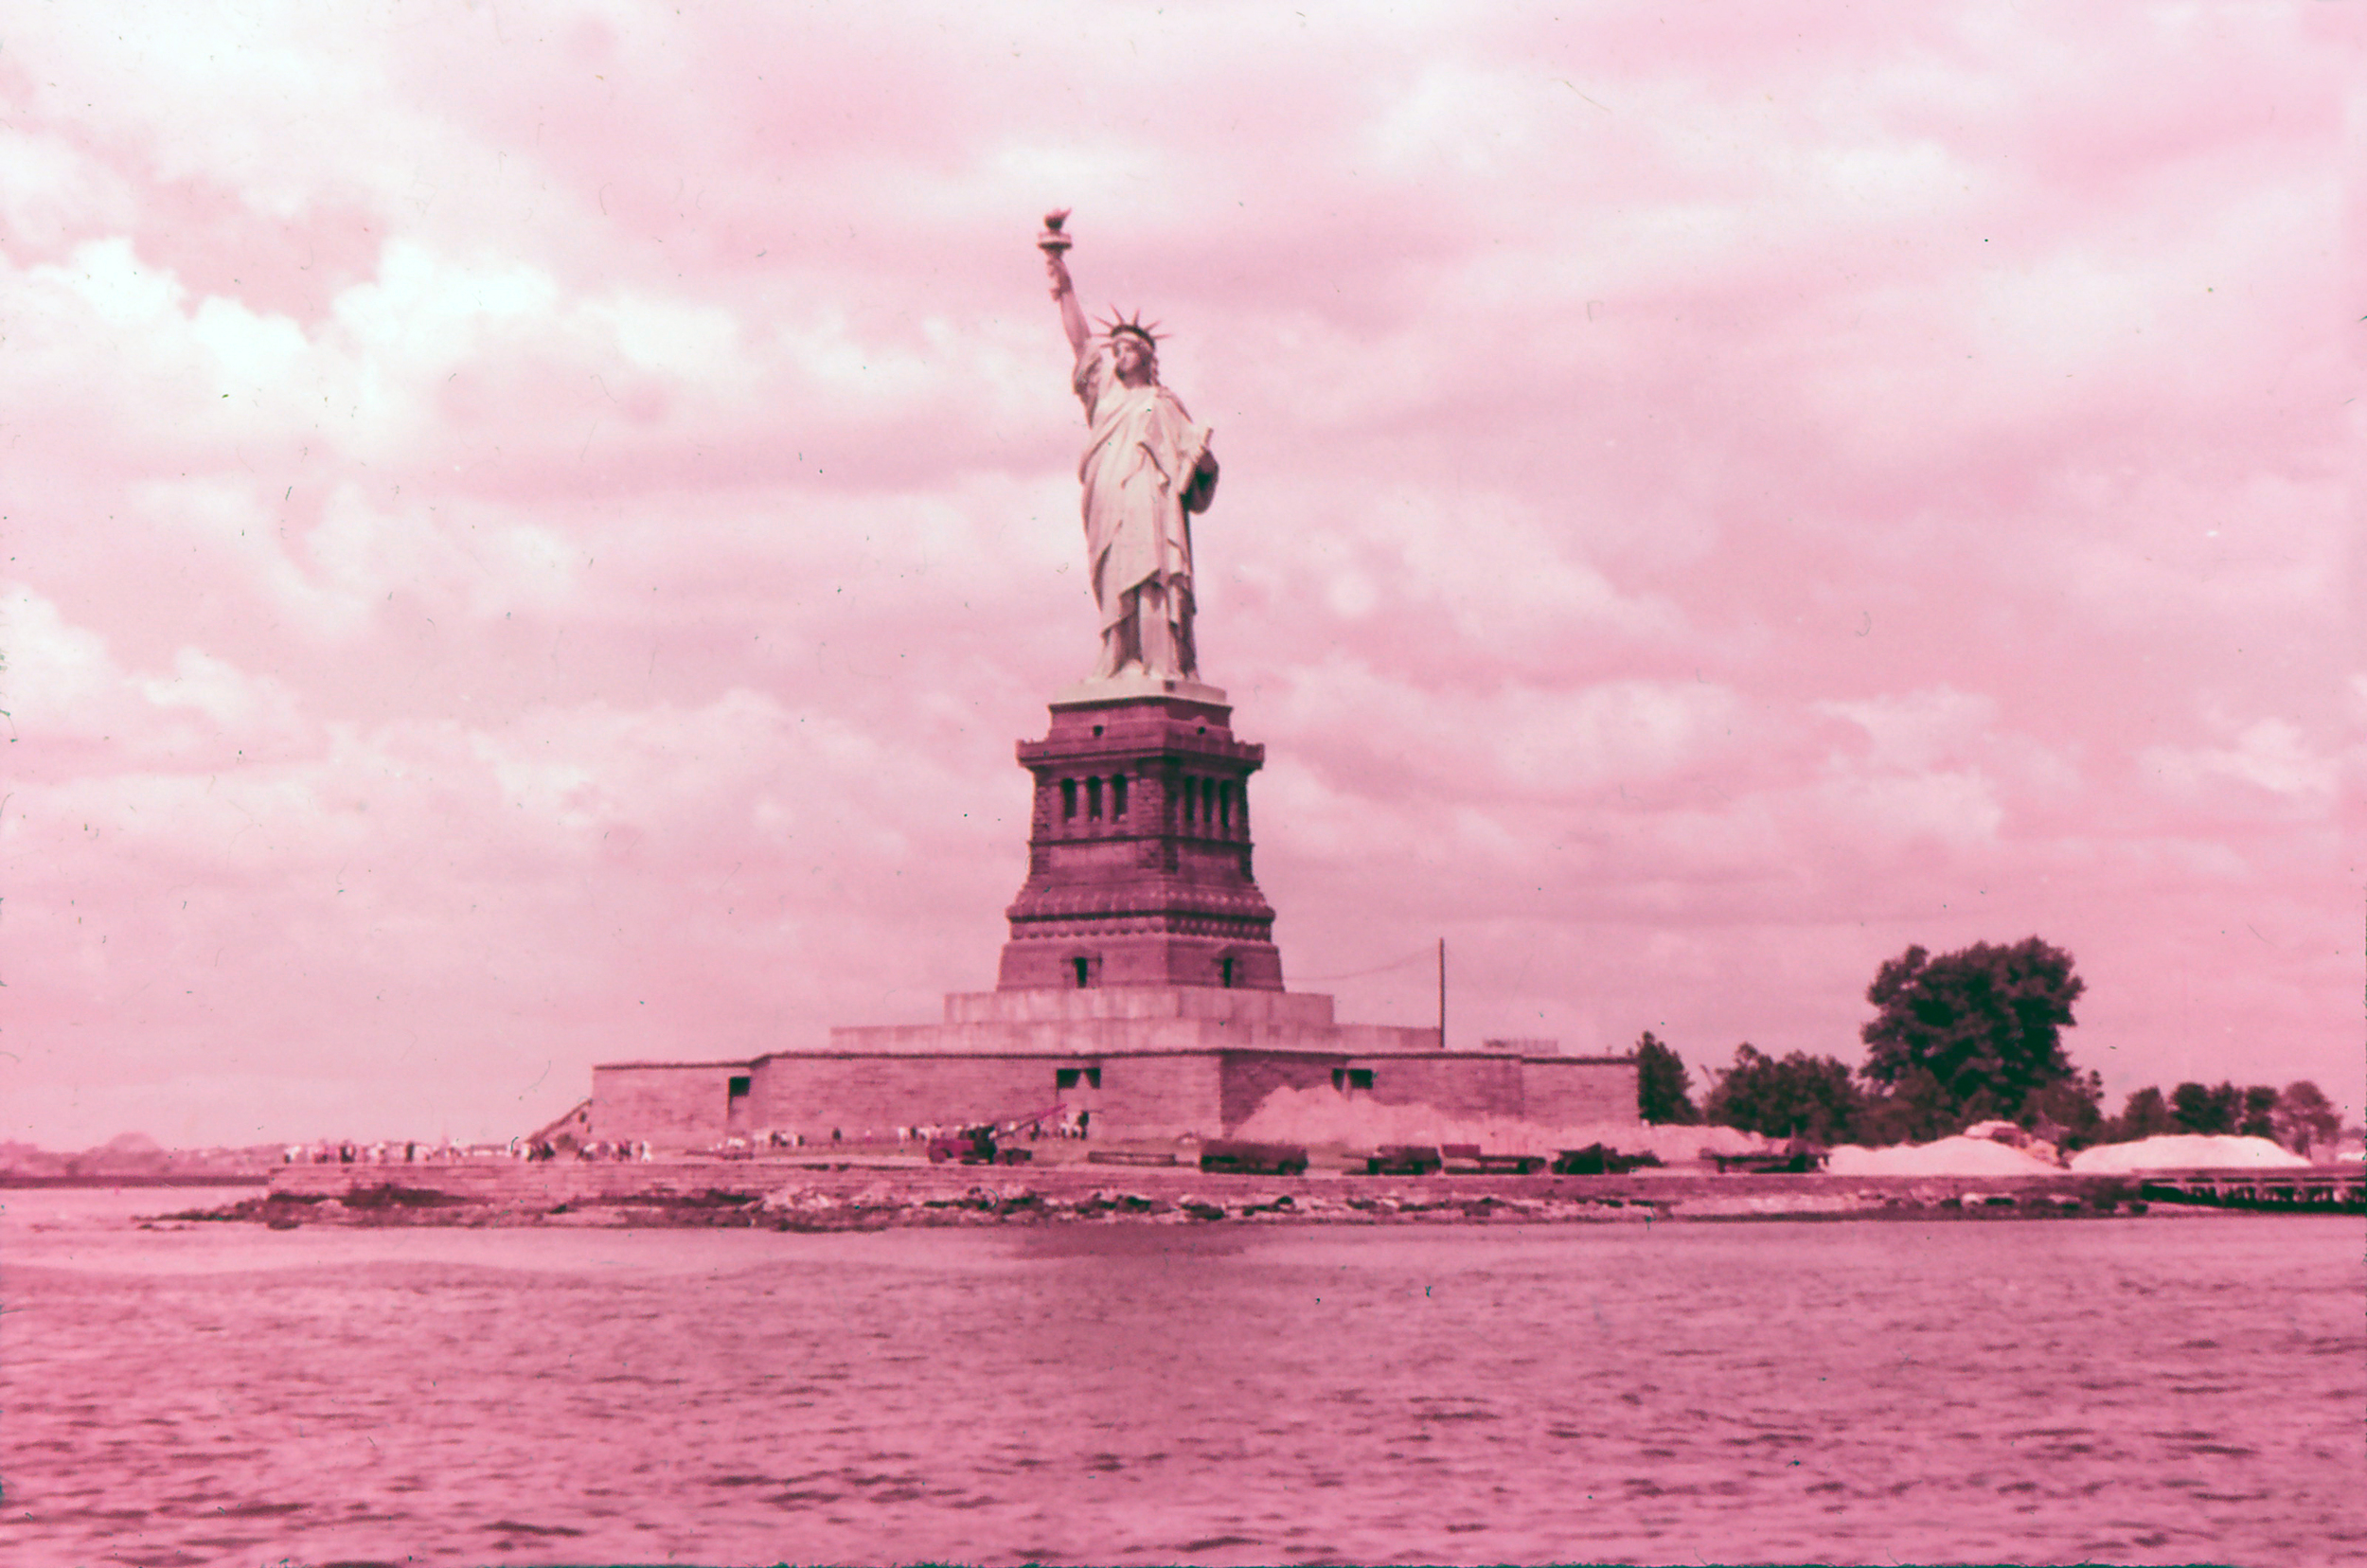 The Statue of Liberty, 1964.